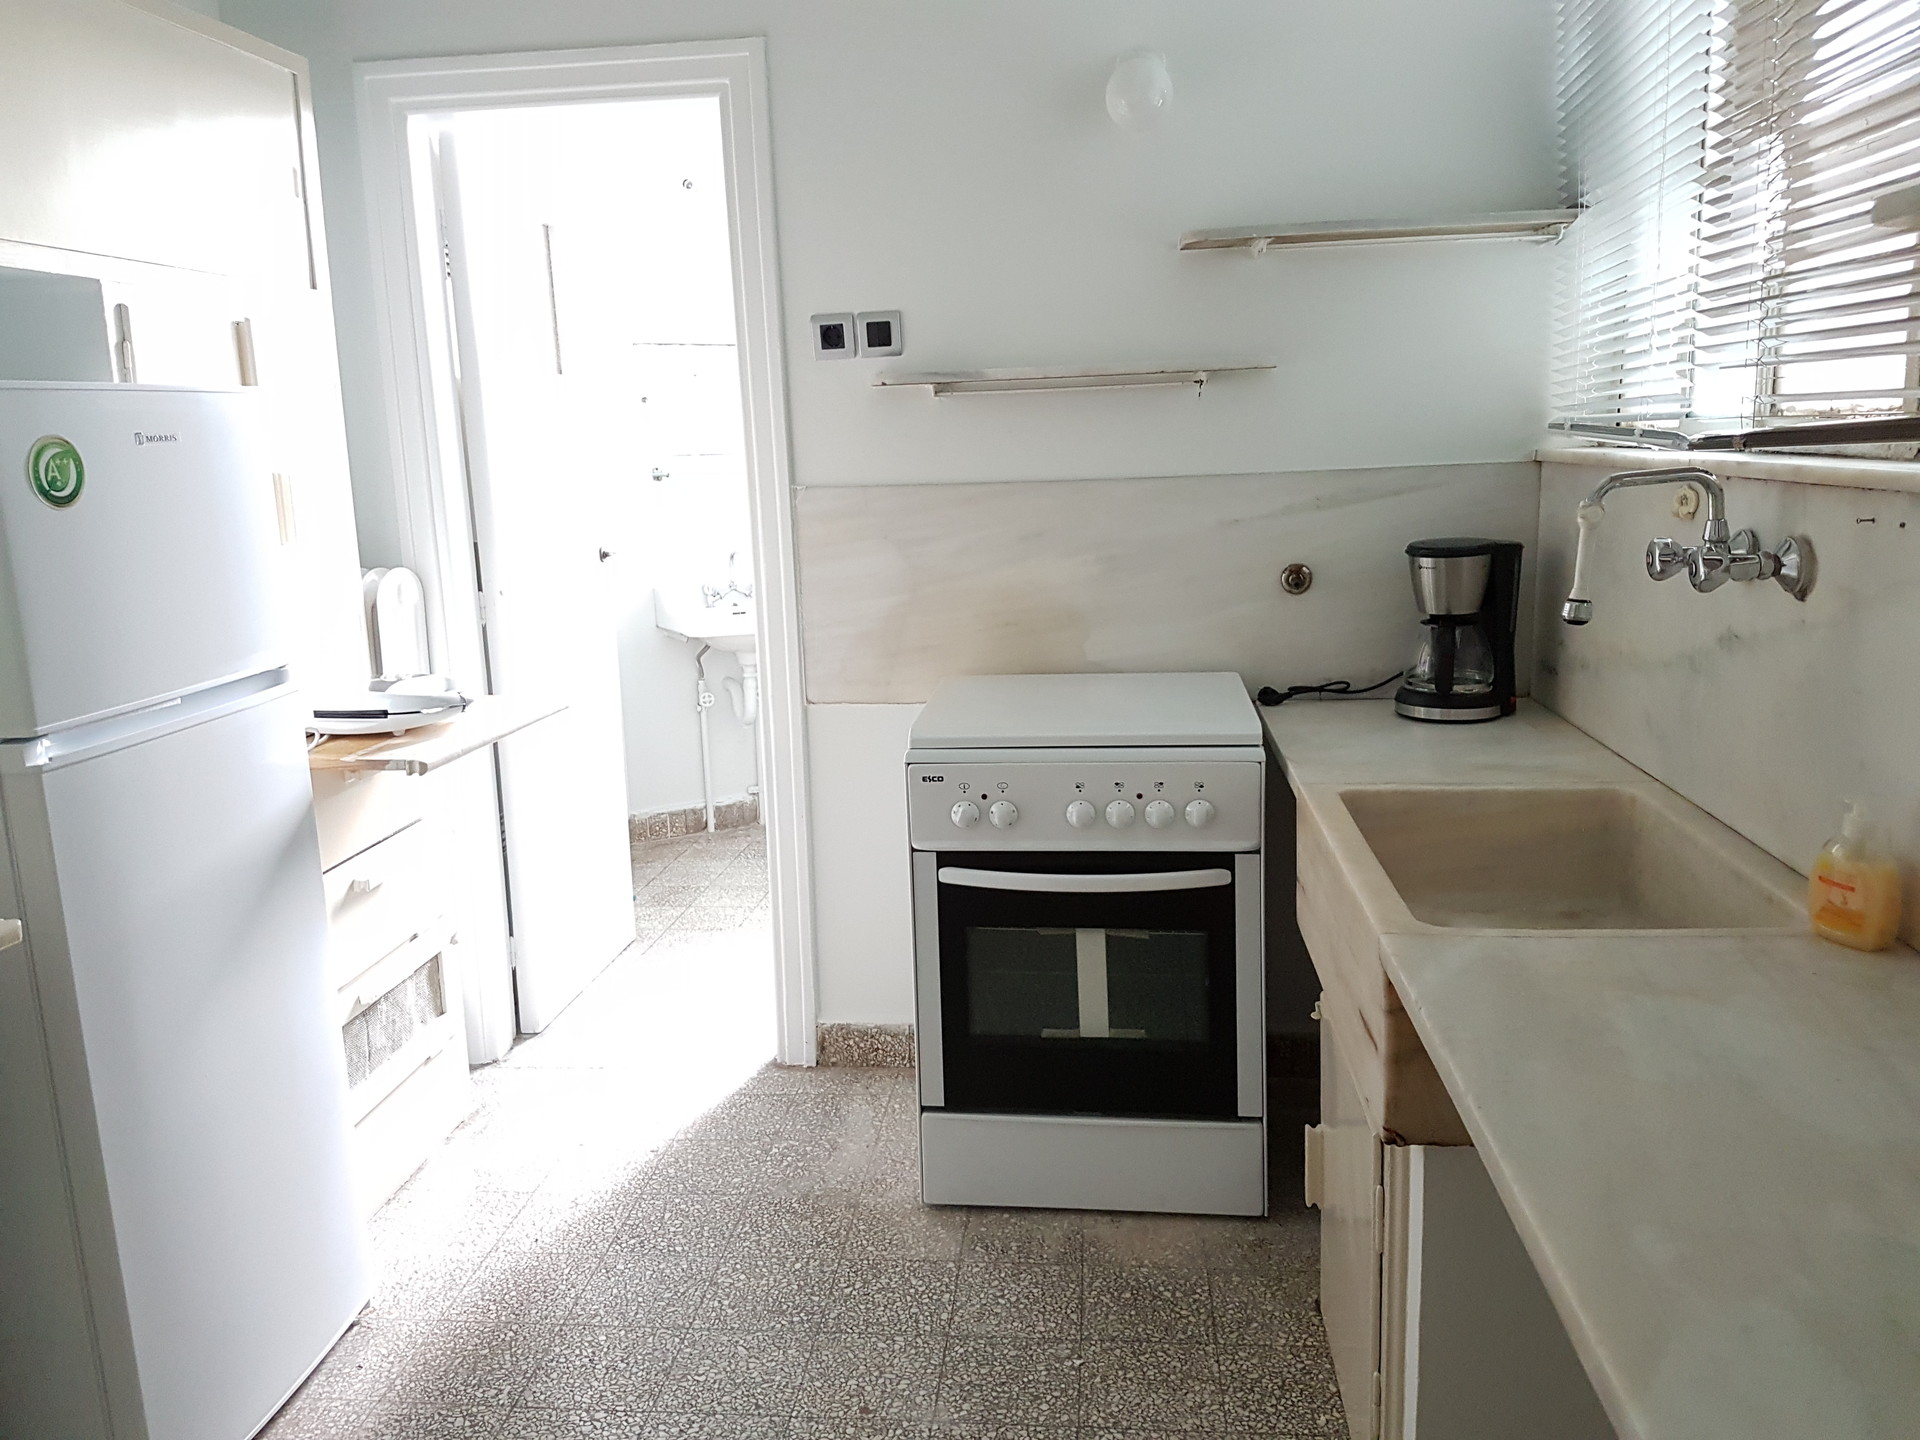 Sunny big classy 20m2 room with a balcony in a very for Balcony kitchen